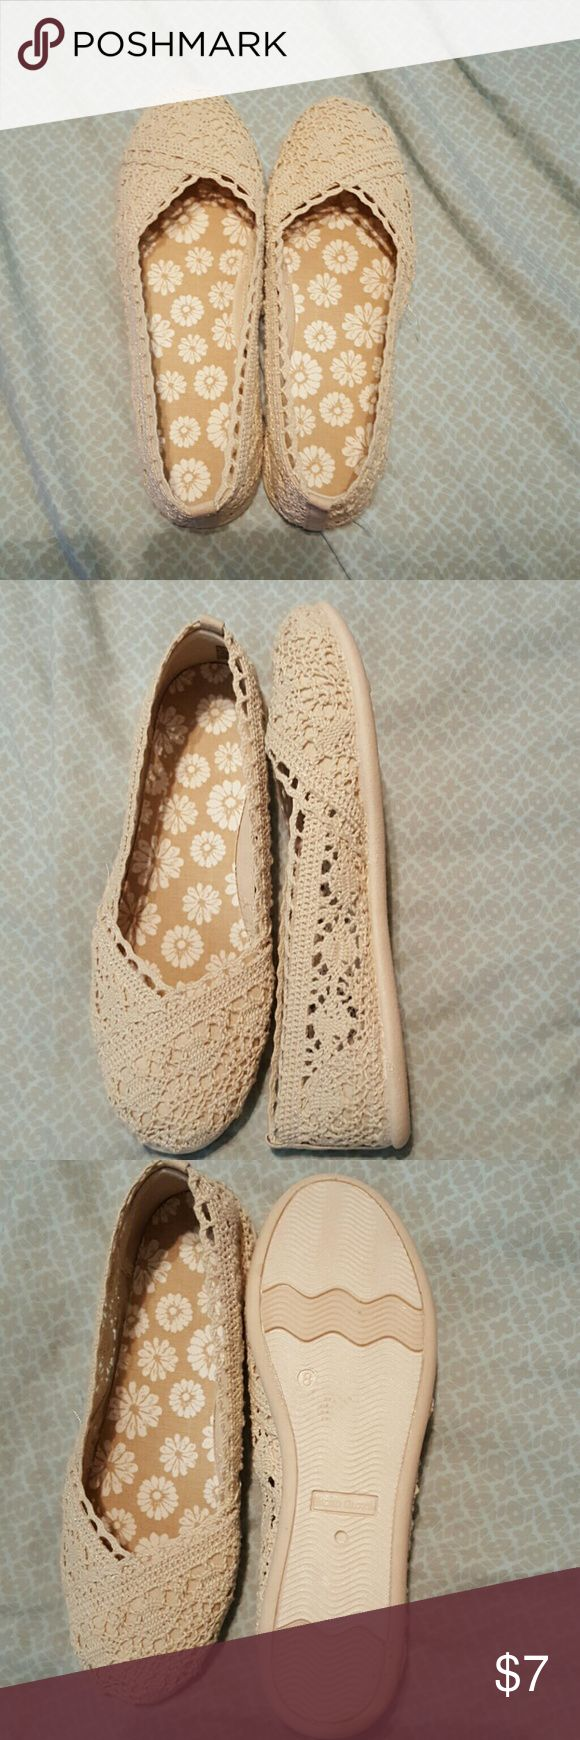 Faded Glory Tan Crochet Flats Beige crochet ballet flats brand new open detail on the sides Faded Glory Shoes Flats & Loafers